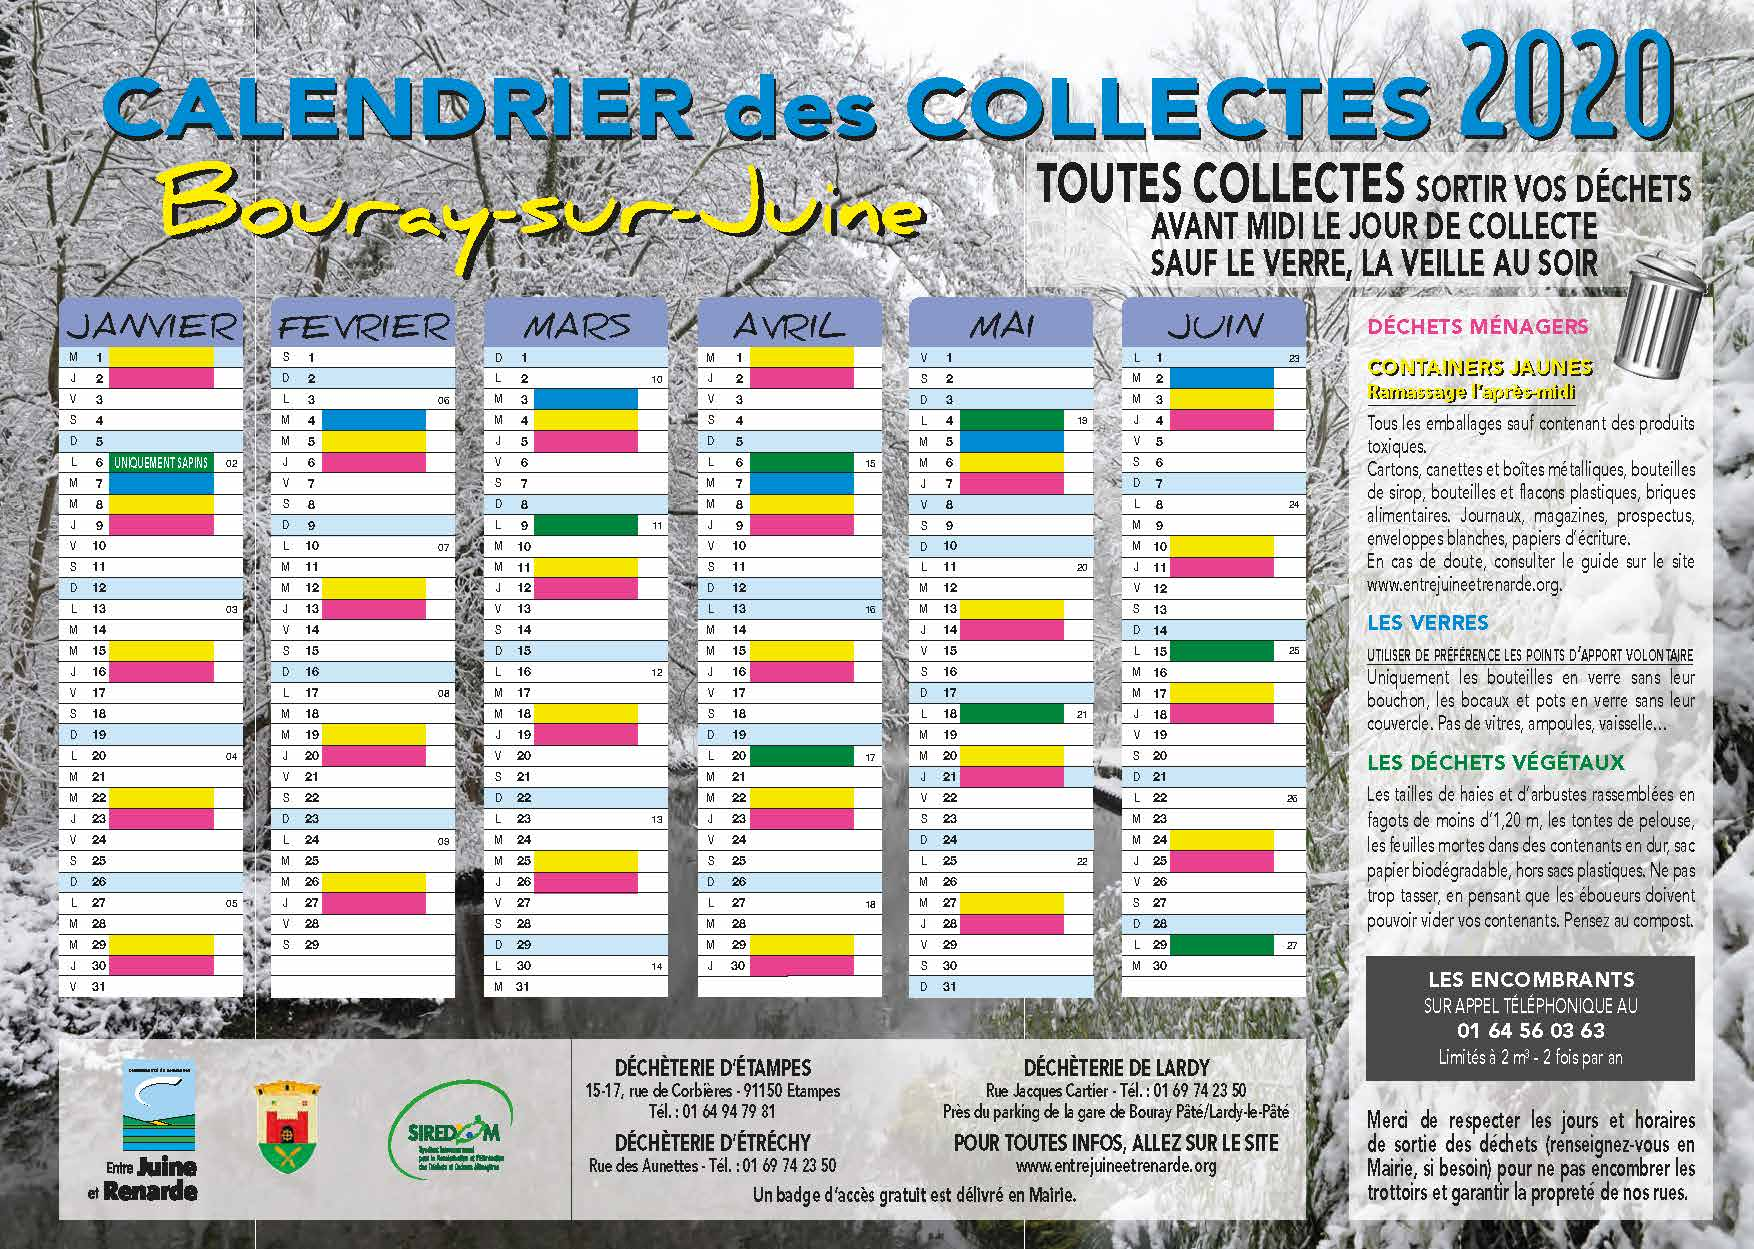 CCJR Calendrier Bouray sur Juine 2020 A4 Recto Verso Page 1